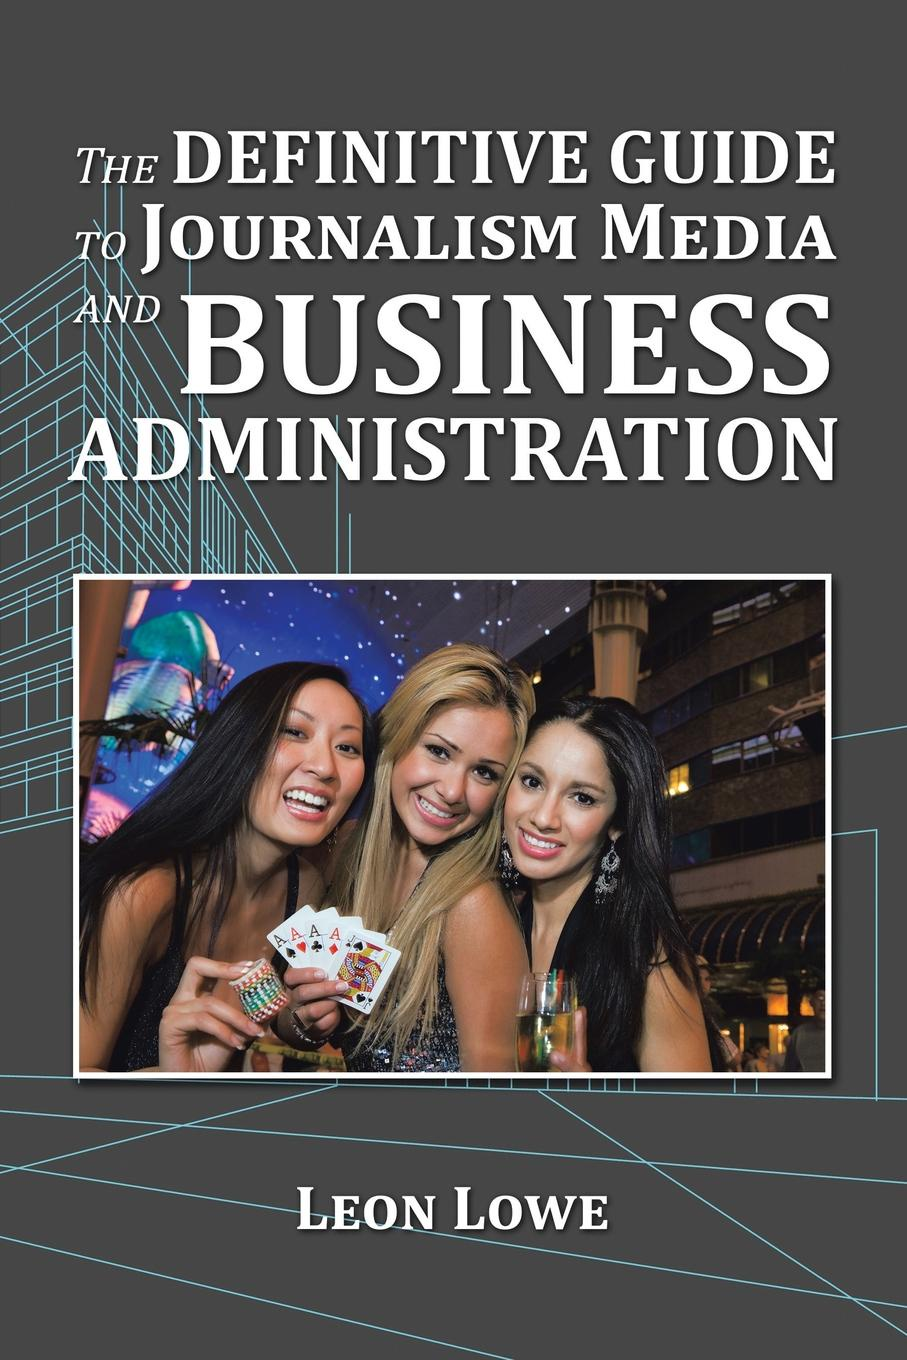 Leon Lowe The Definitive Guide to Journalism Media and Business Administration frederic brandt 10 minutes 10 years your definitive guide to a beautiful and youthful